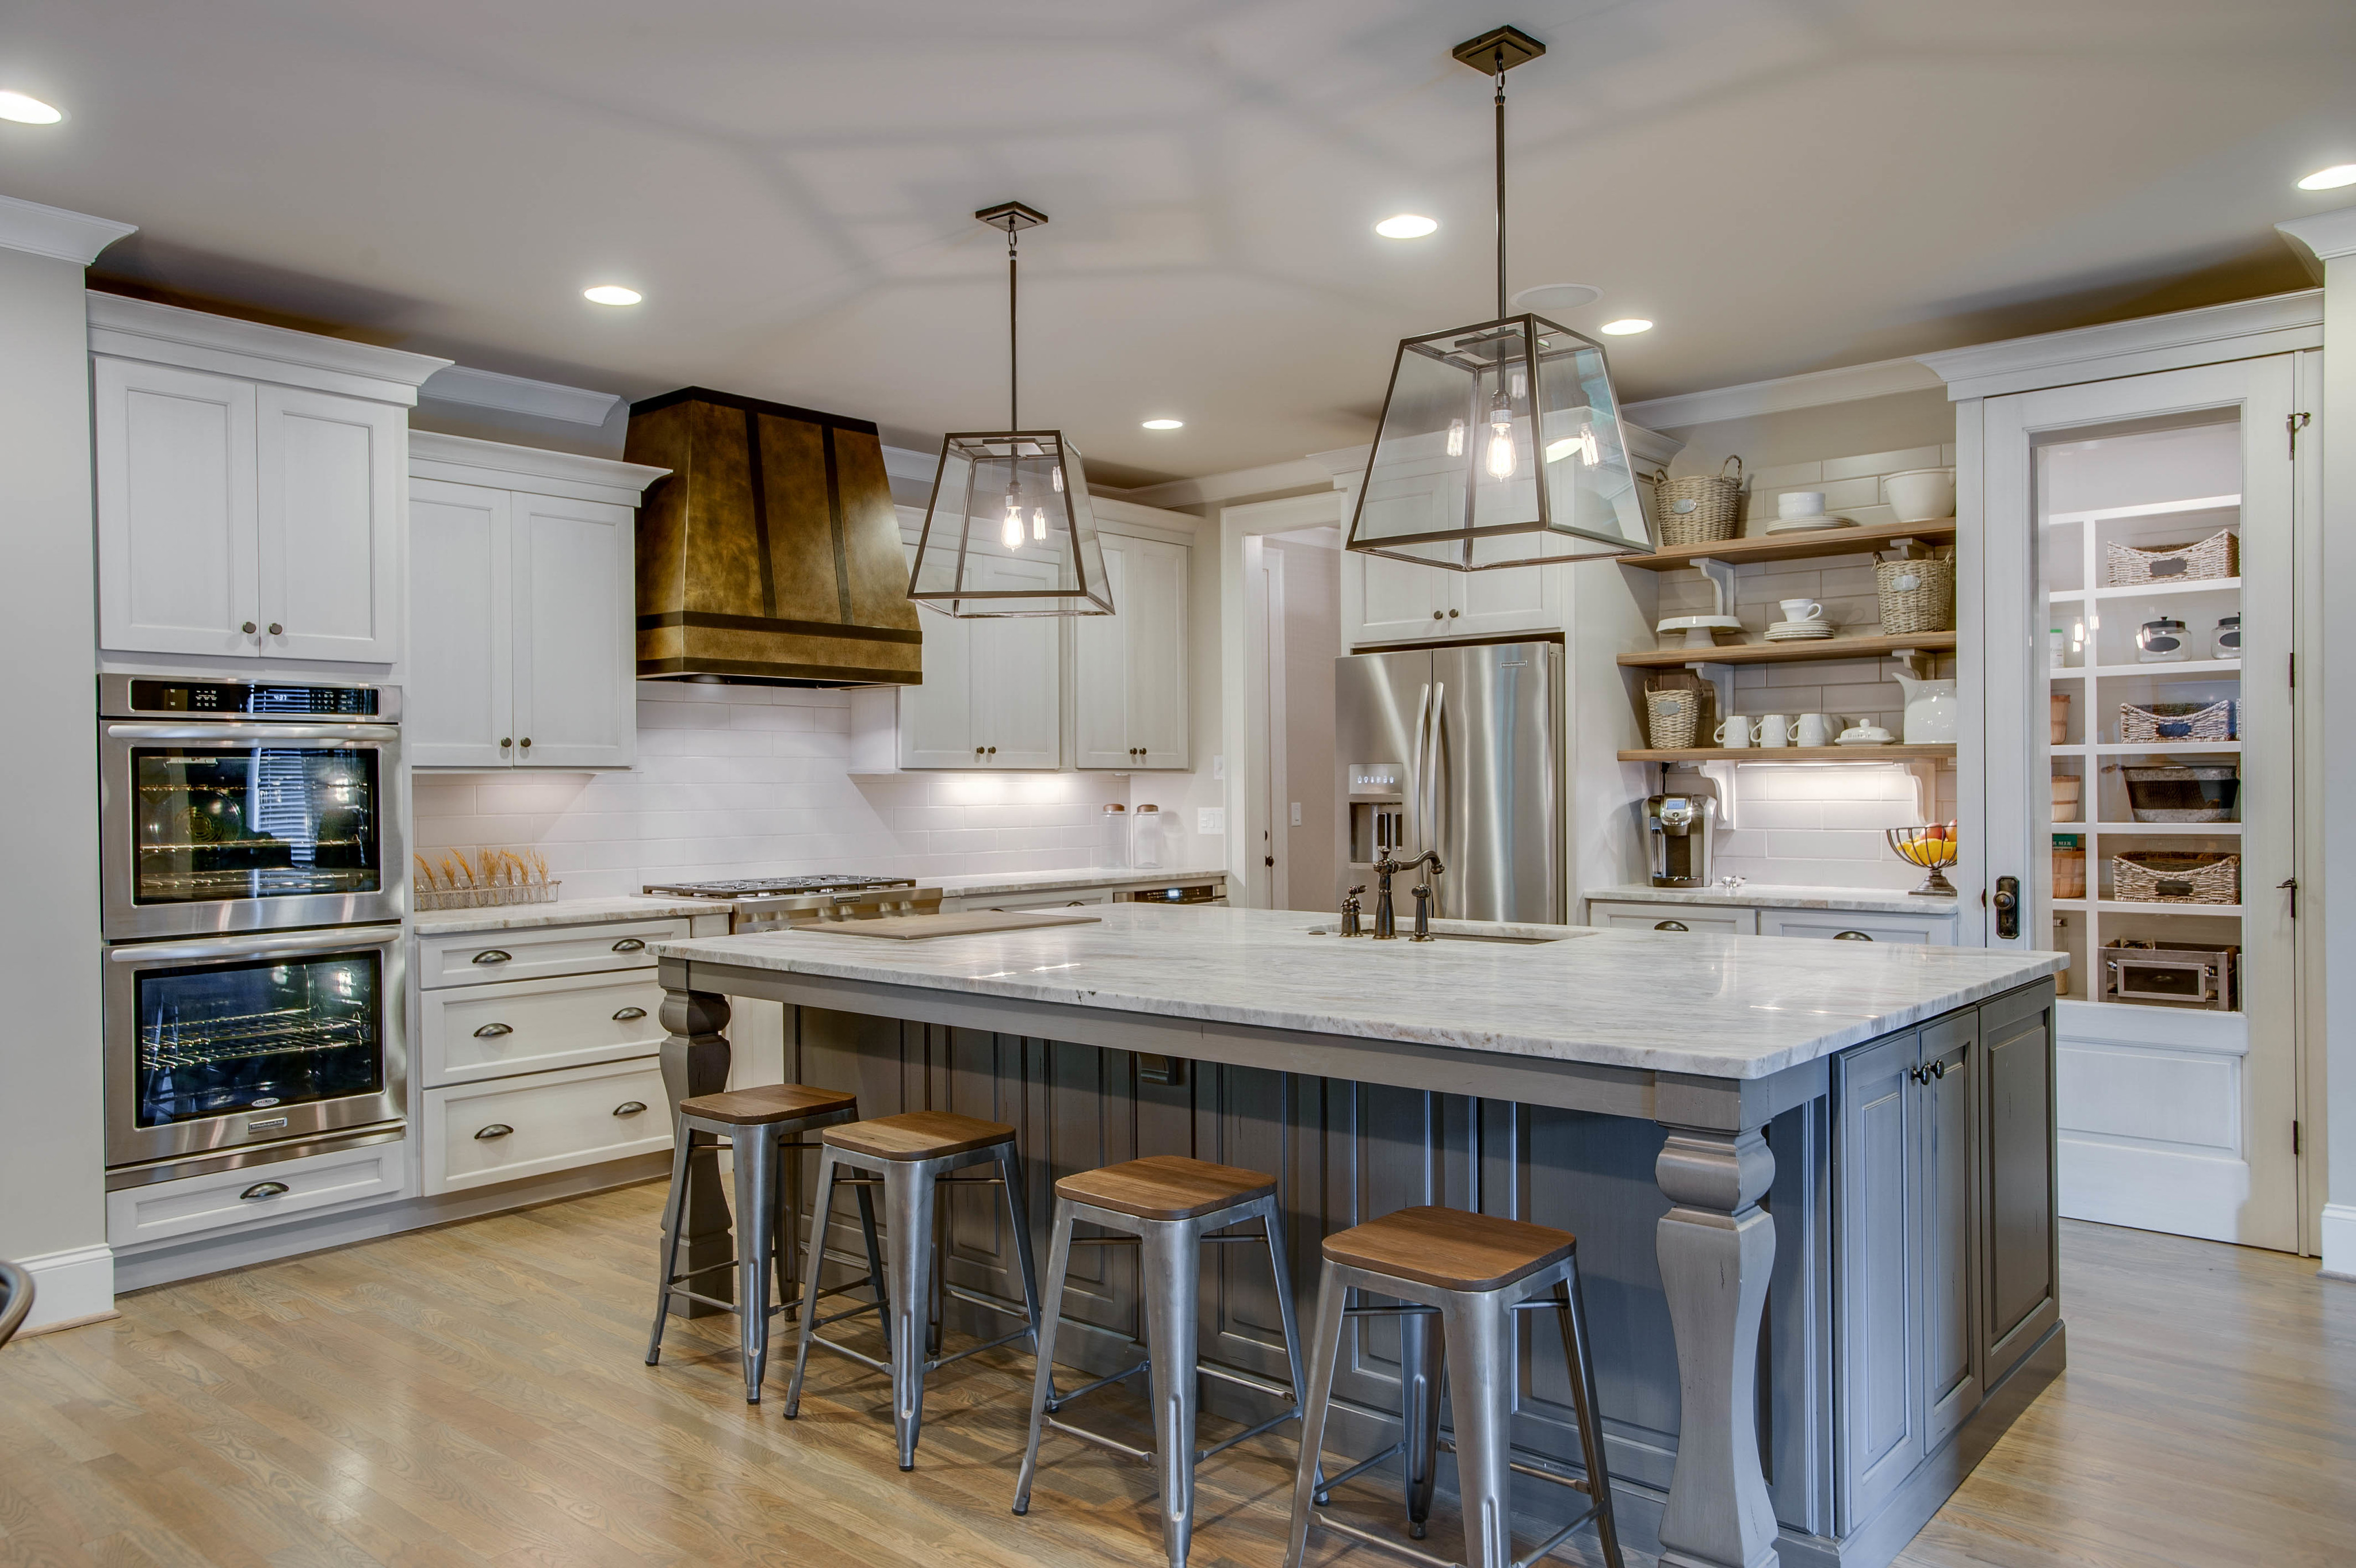 Brentwood Cabinets Offers Unmatched Service To Our Clients By Providing  High Quality Products At Reasonable Prices While Maintaining An Exceptional  Level Of ...